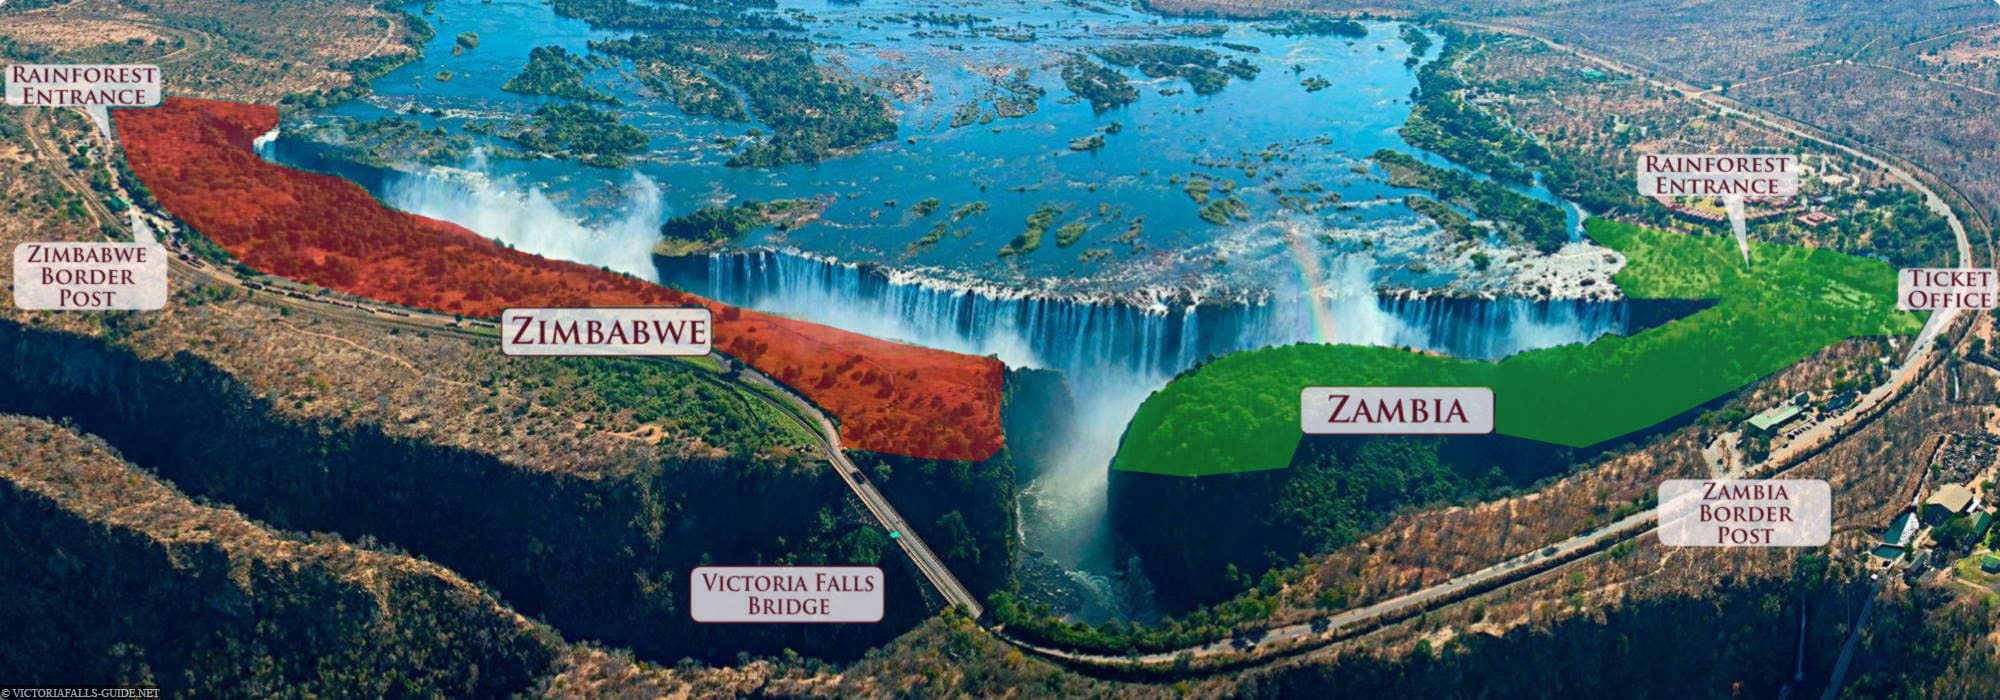 Victoria Falls, Map, Zambia Page, Zimbabwe Page, National Park, Map, Travelreport, Africa